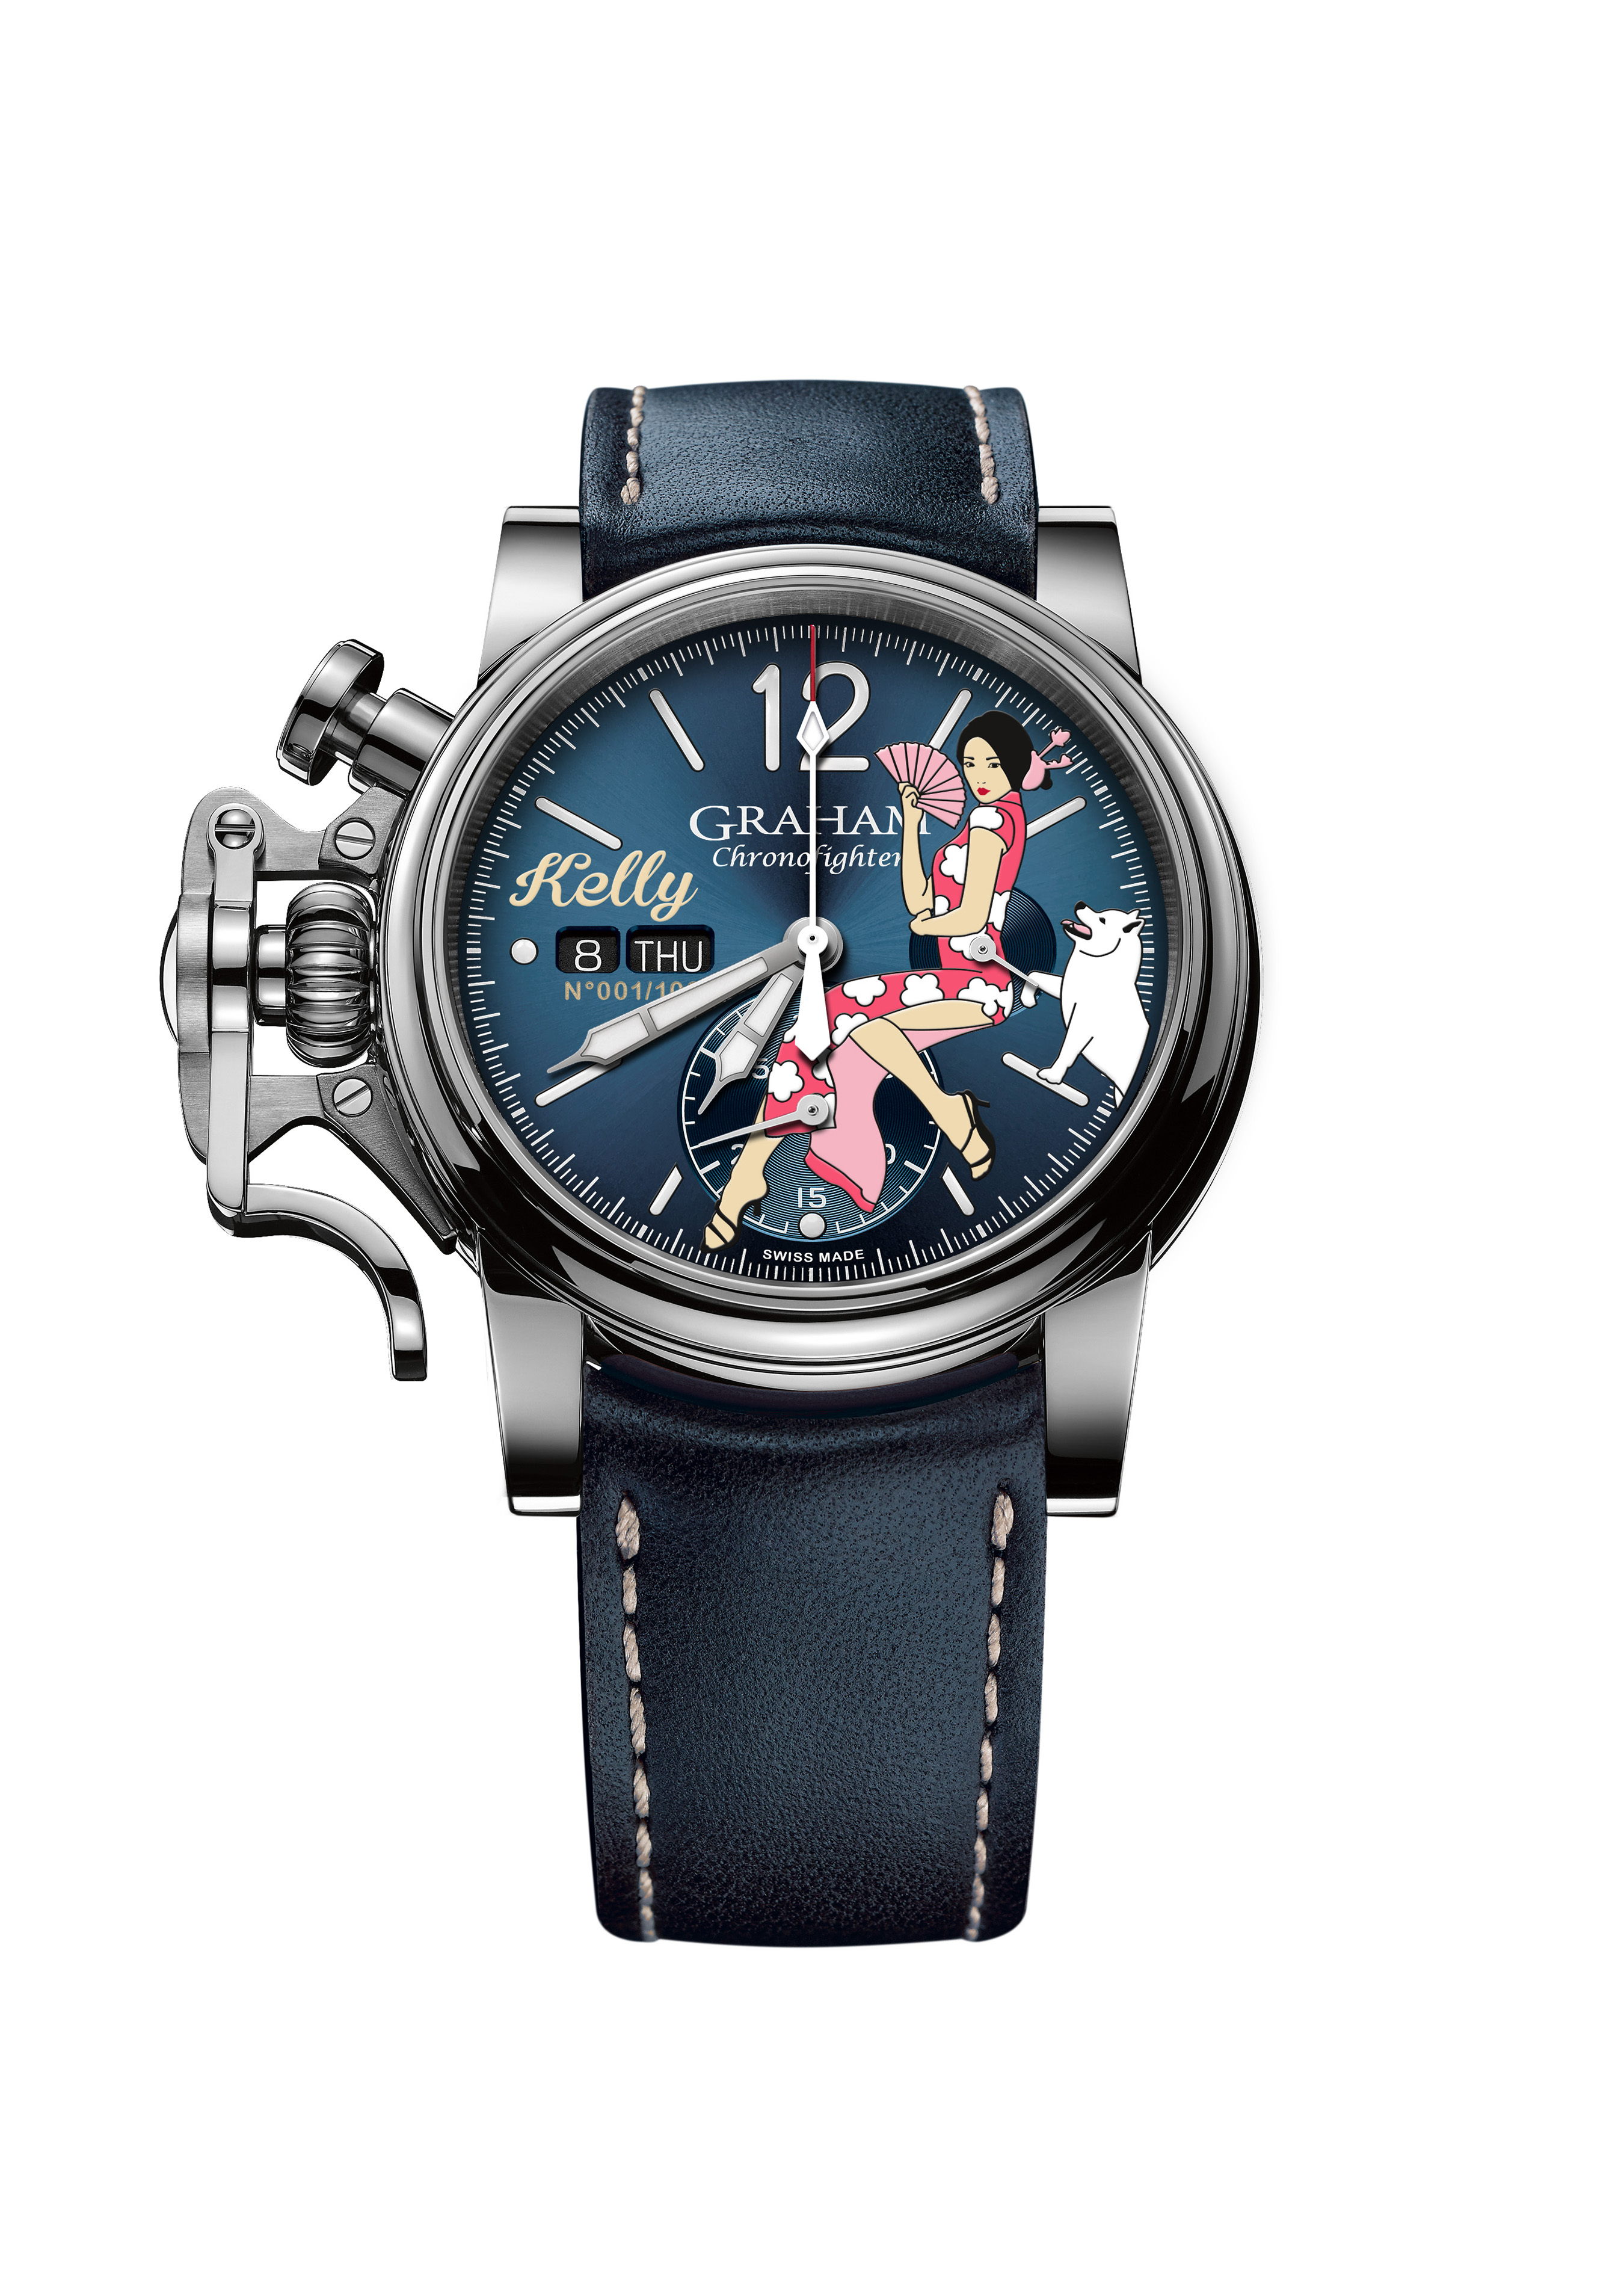 GRAHAM-Chronofighter-Vintage-Nose-Art-Kelly, Year of the Dog